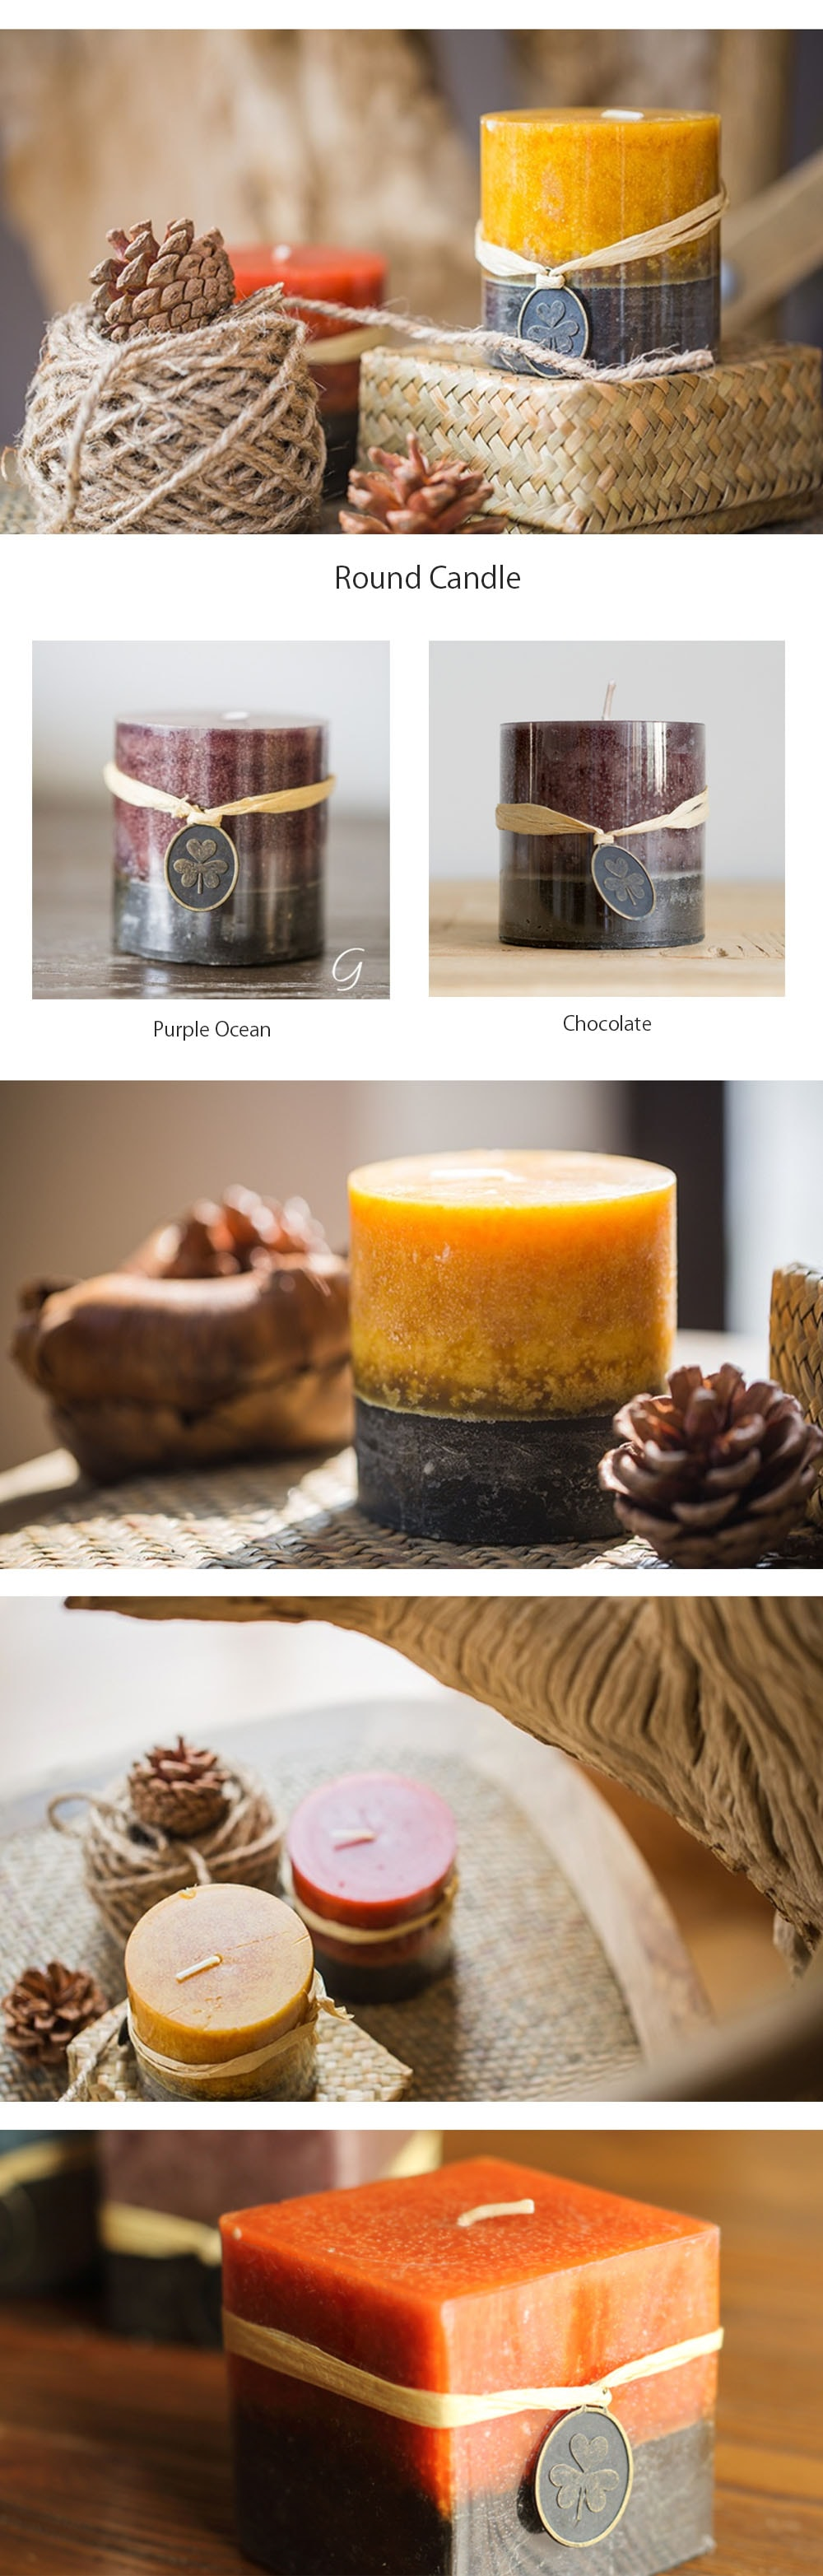 Aromatherapy Candle Collection Fill The Air With A Beautiful Scent